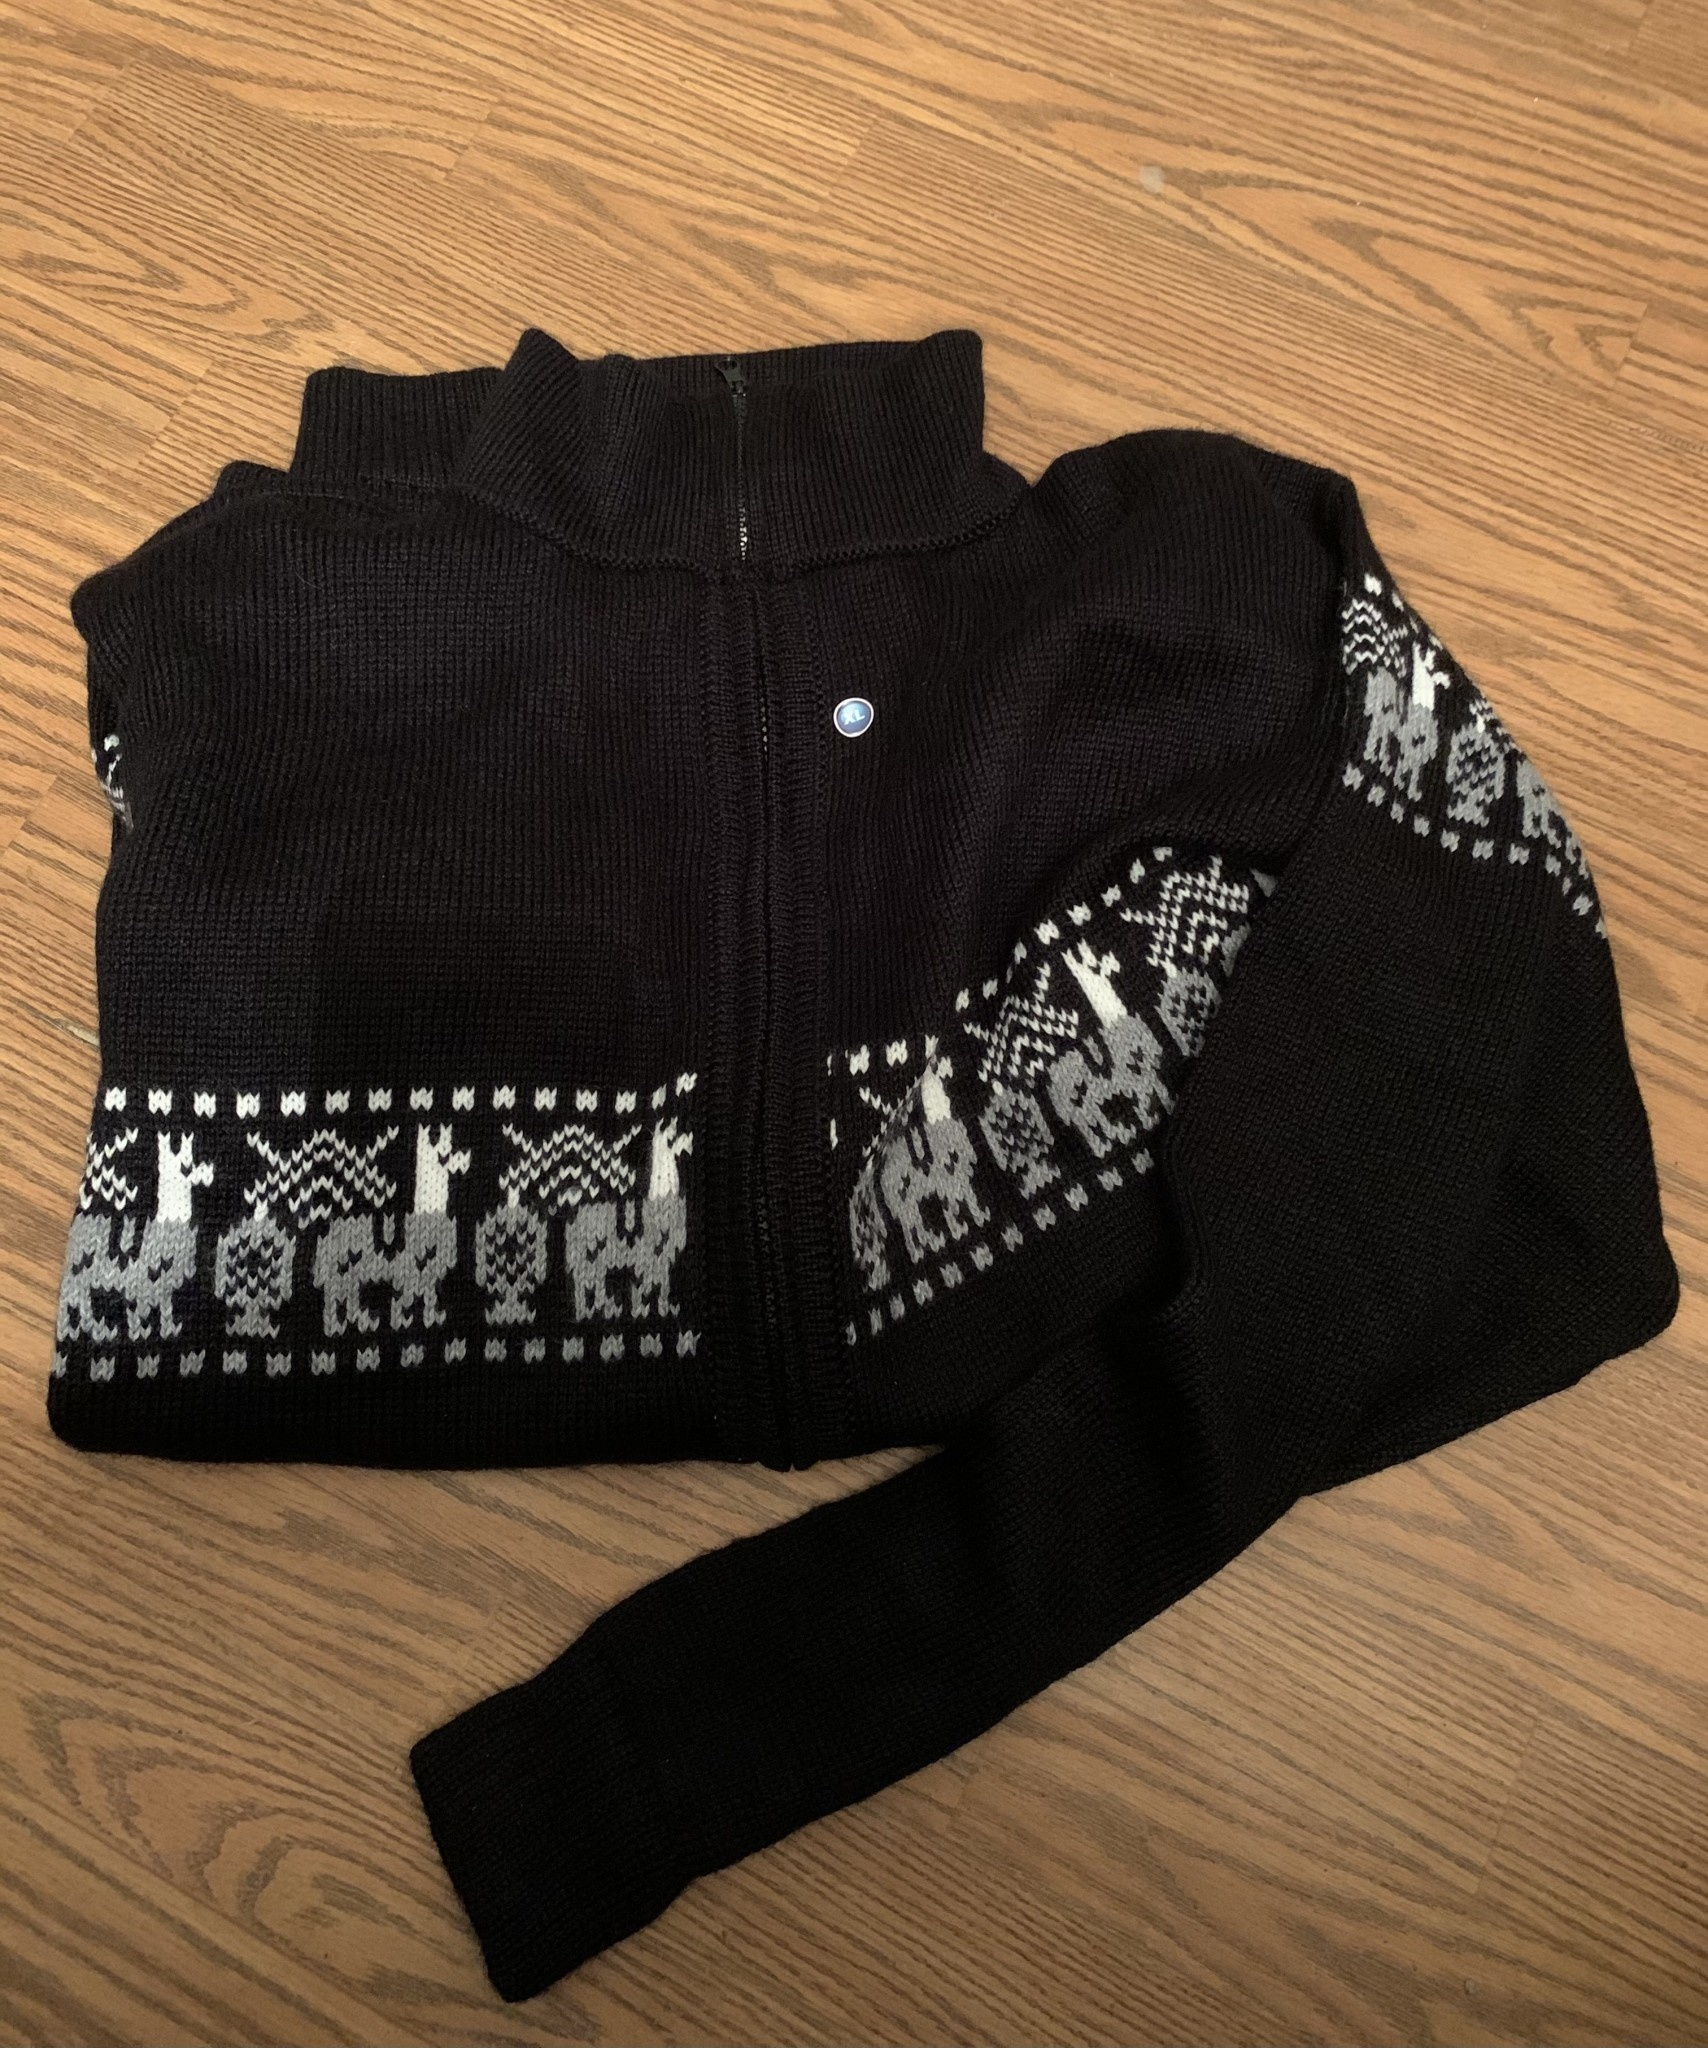 Alpaca Mall Alpaca Sweater, Black with White Design XL